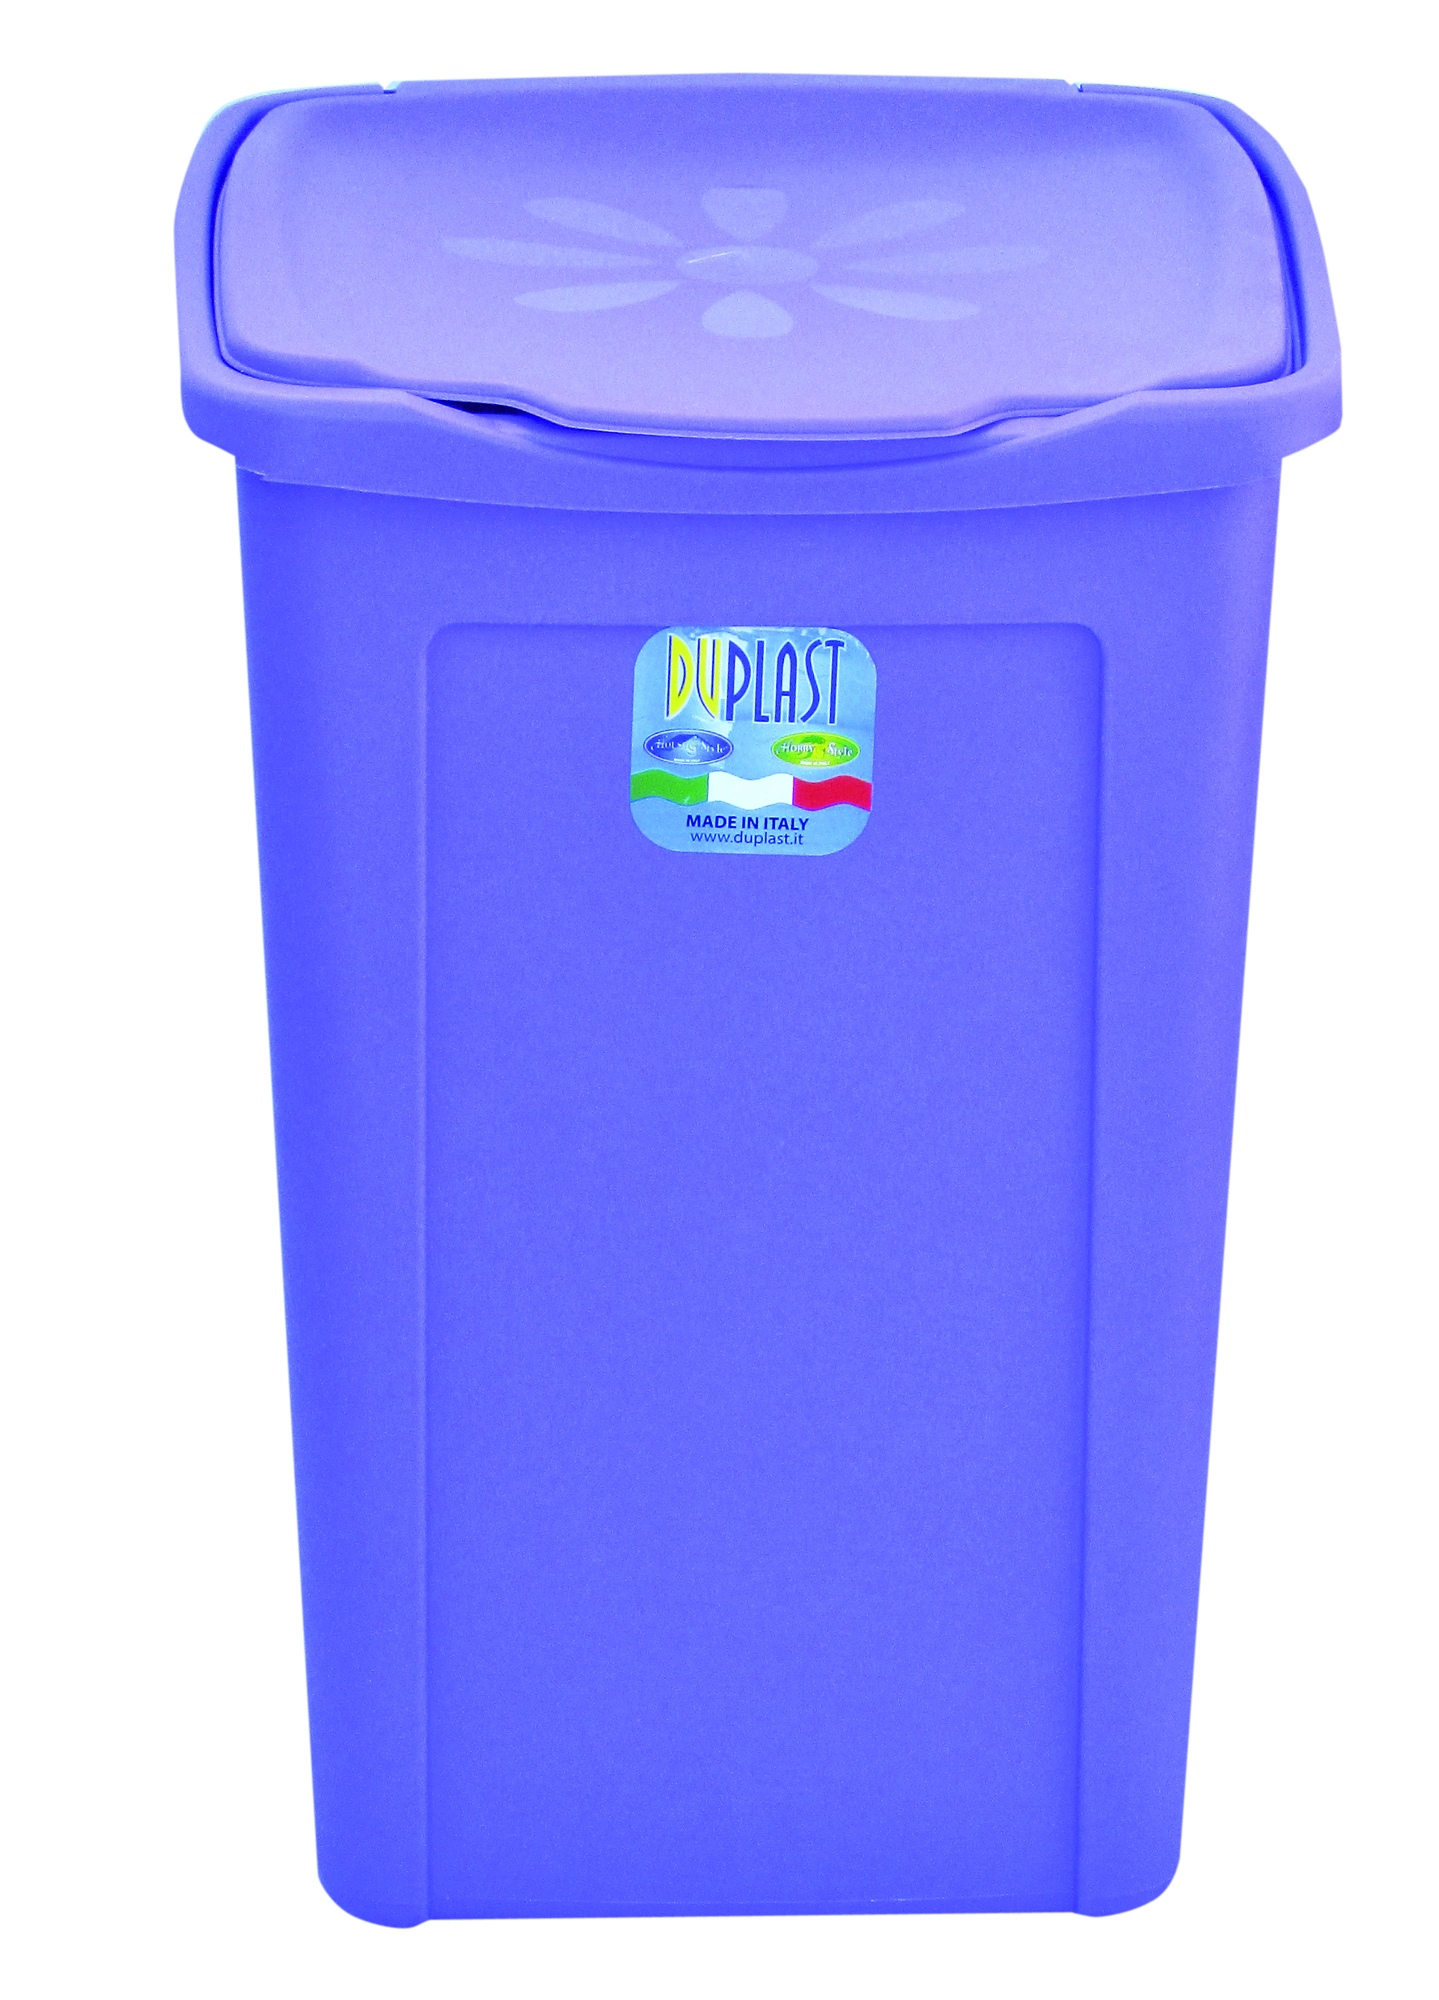 50 litre laundry basket lid washing bin hamper storage home large capacity new ebay - Plastic hamper with lid ...